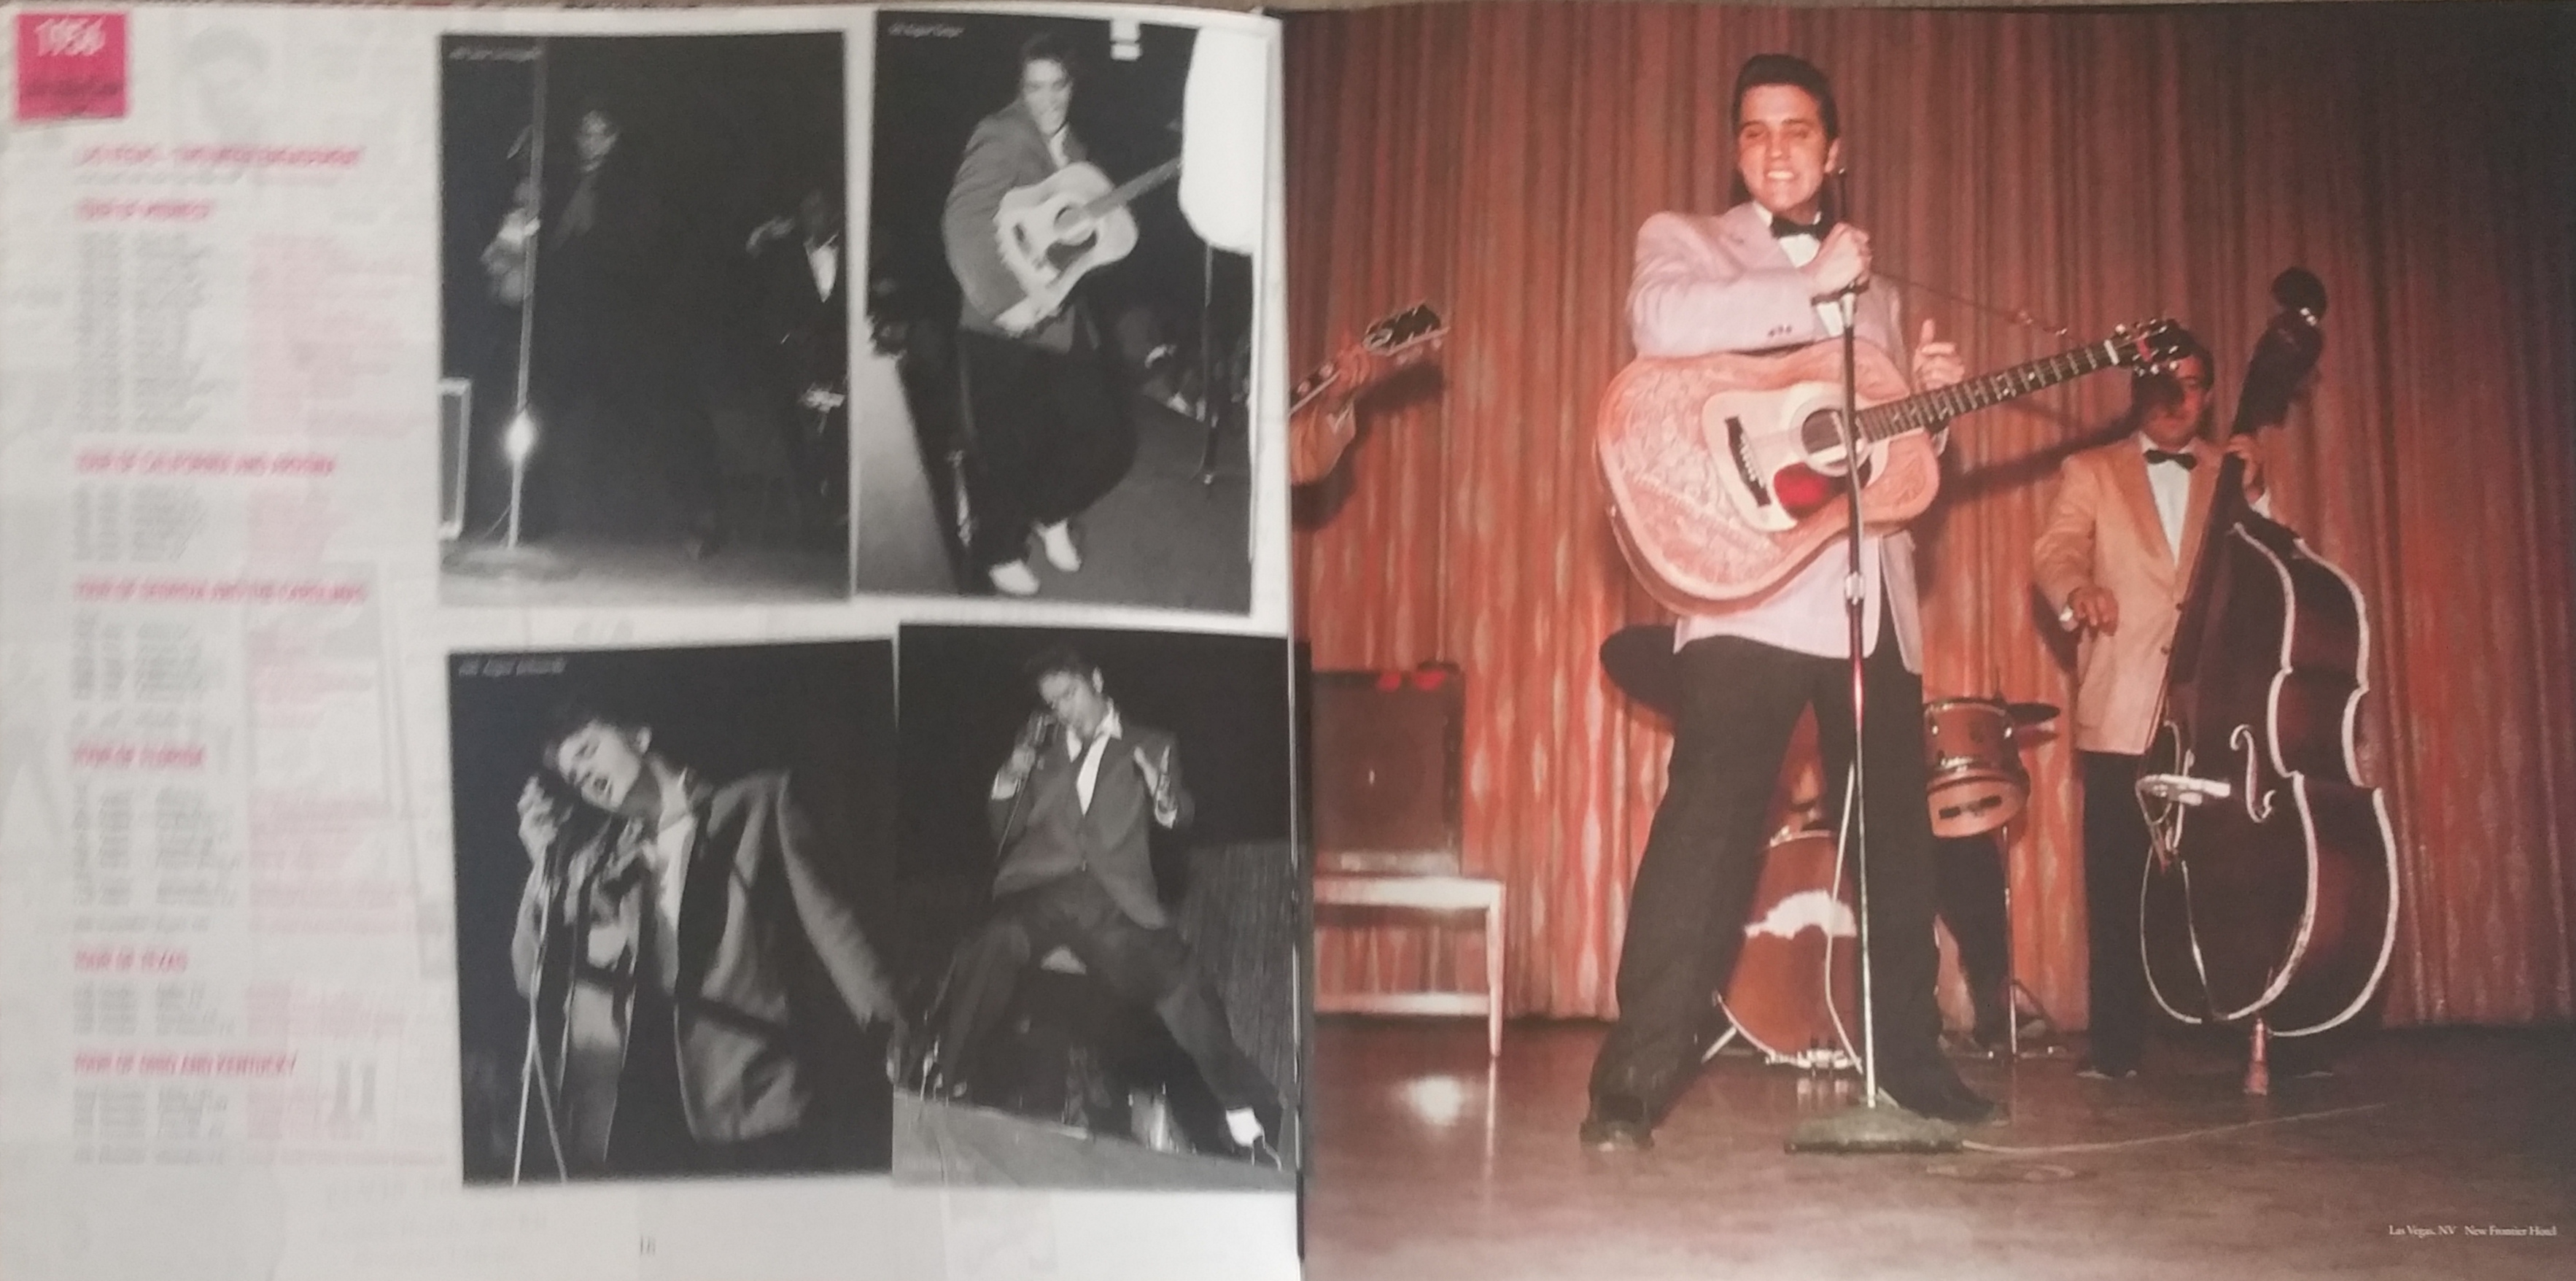 LIVE IN THE 50's (The Complete Tour Recordings) Liveinthe50s-thecompl02kra